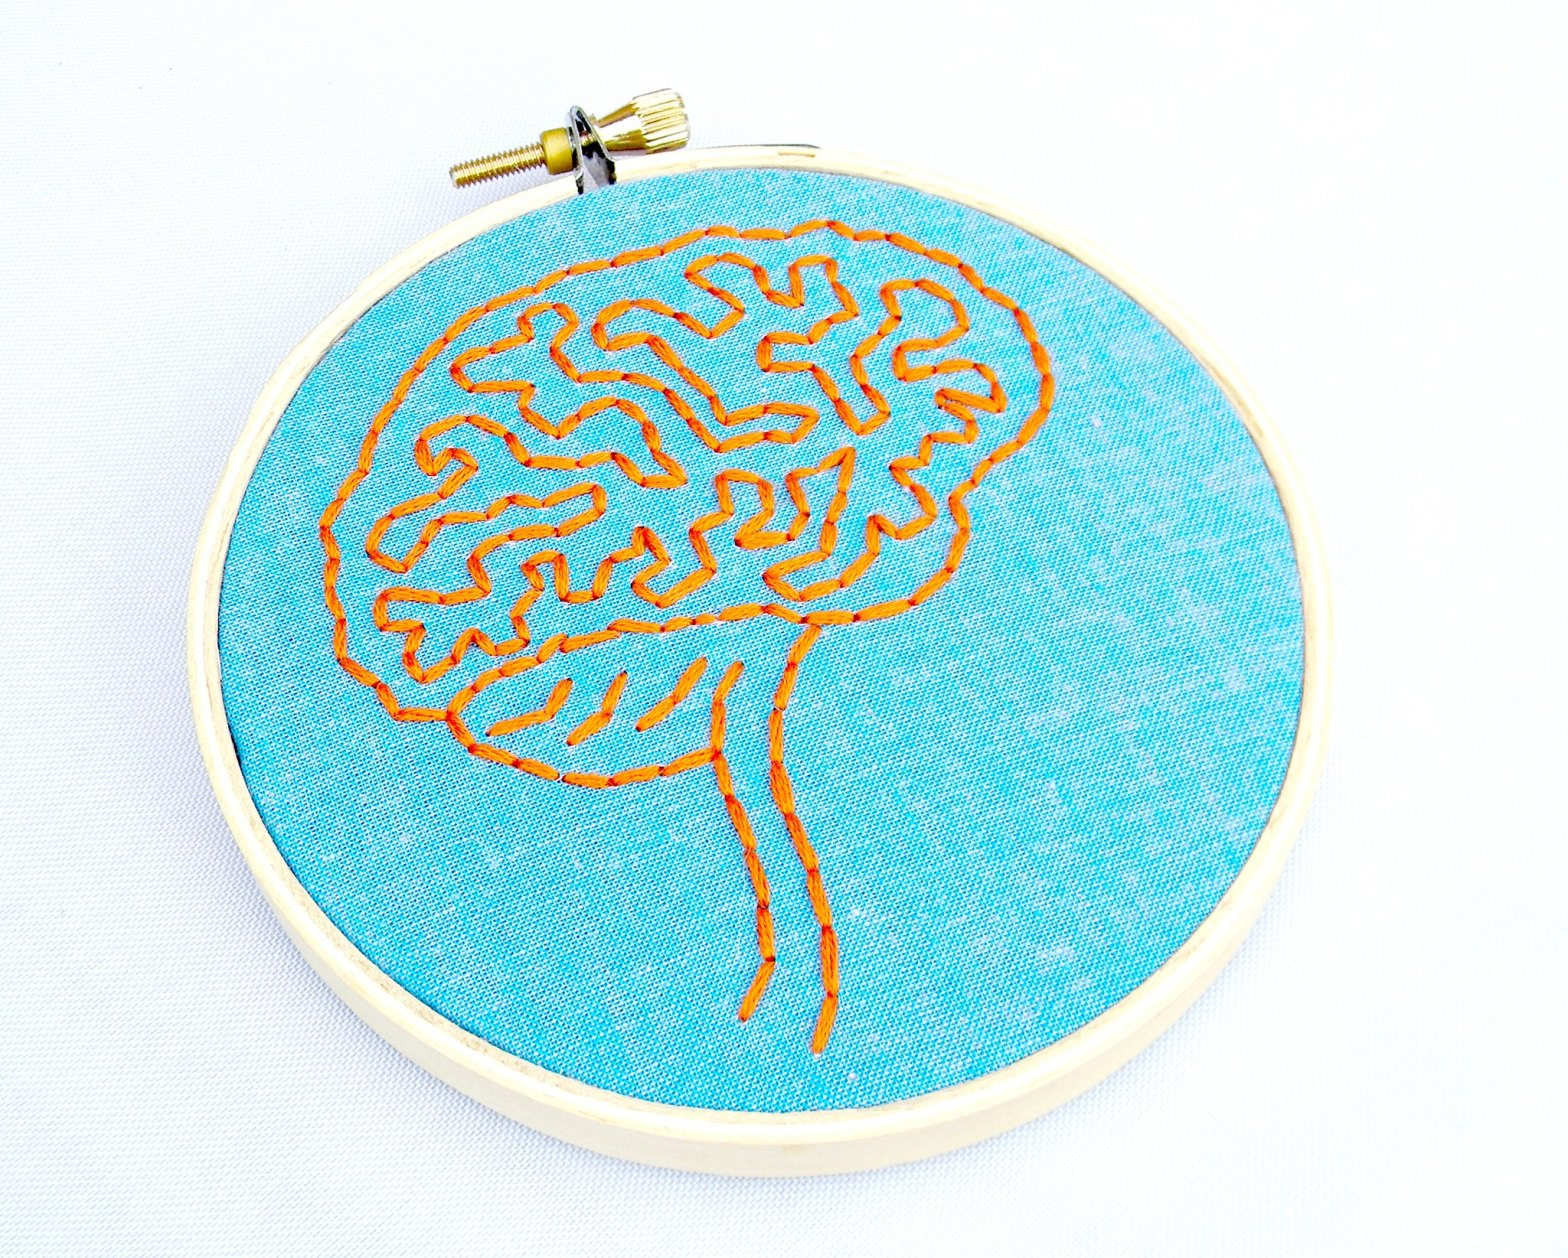 An embroidery hoop with a blue background and a brain outline embroidered in orange